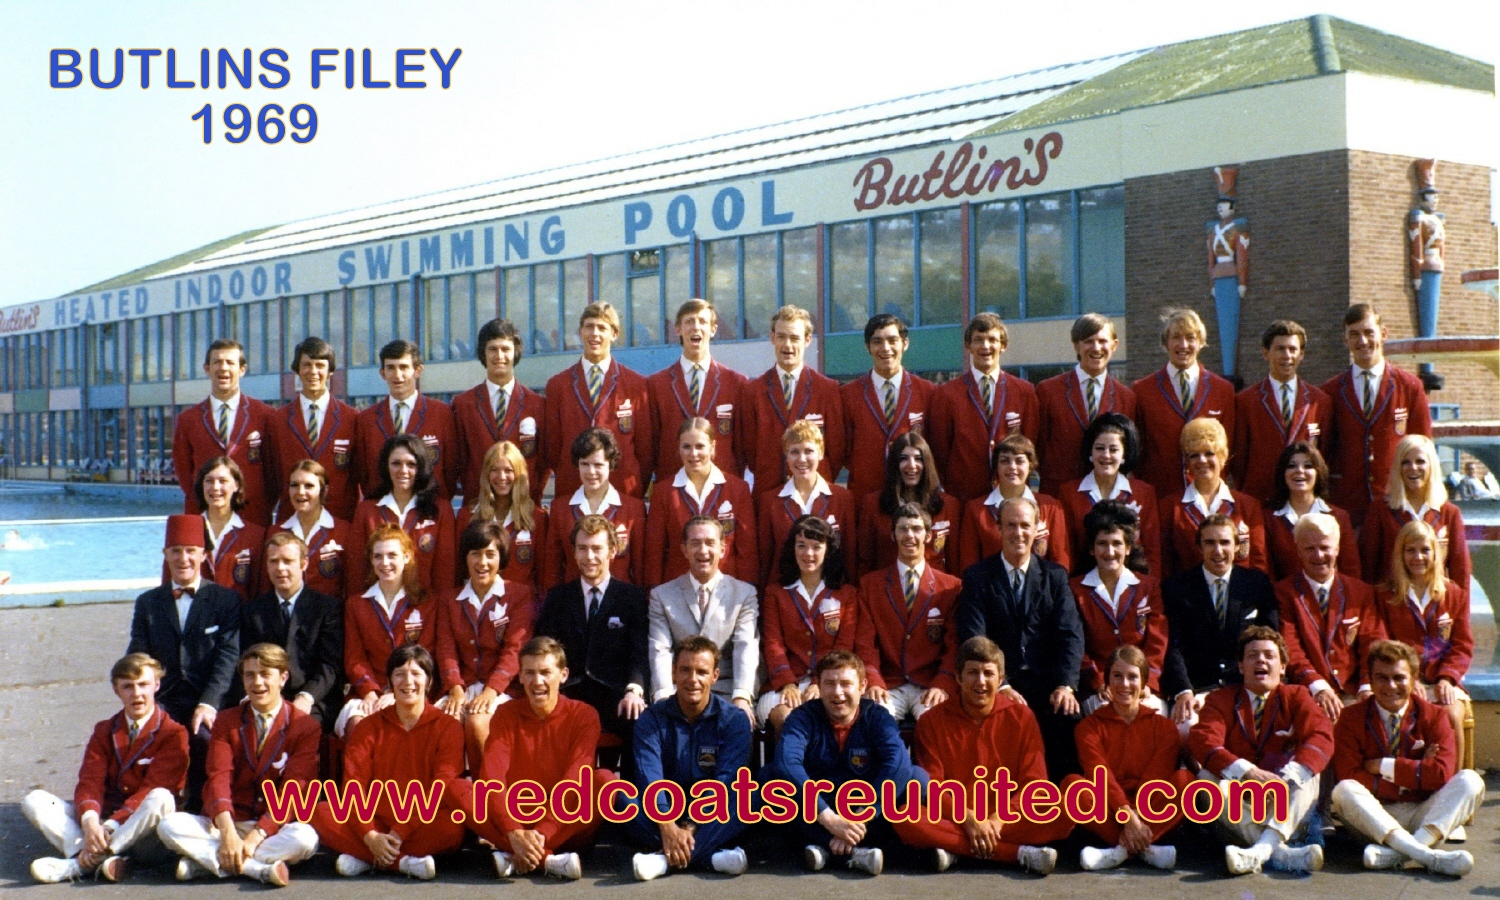 Butlins Filey 1969 at Redcoats Reunited